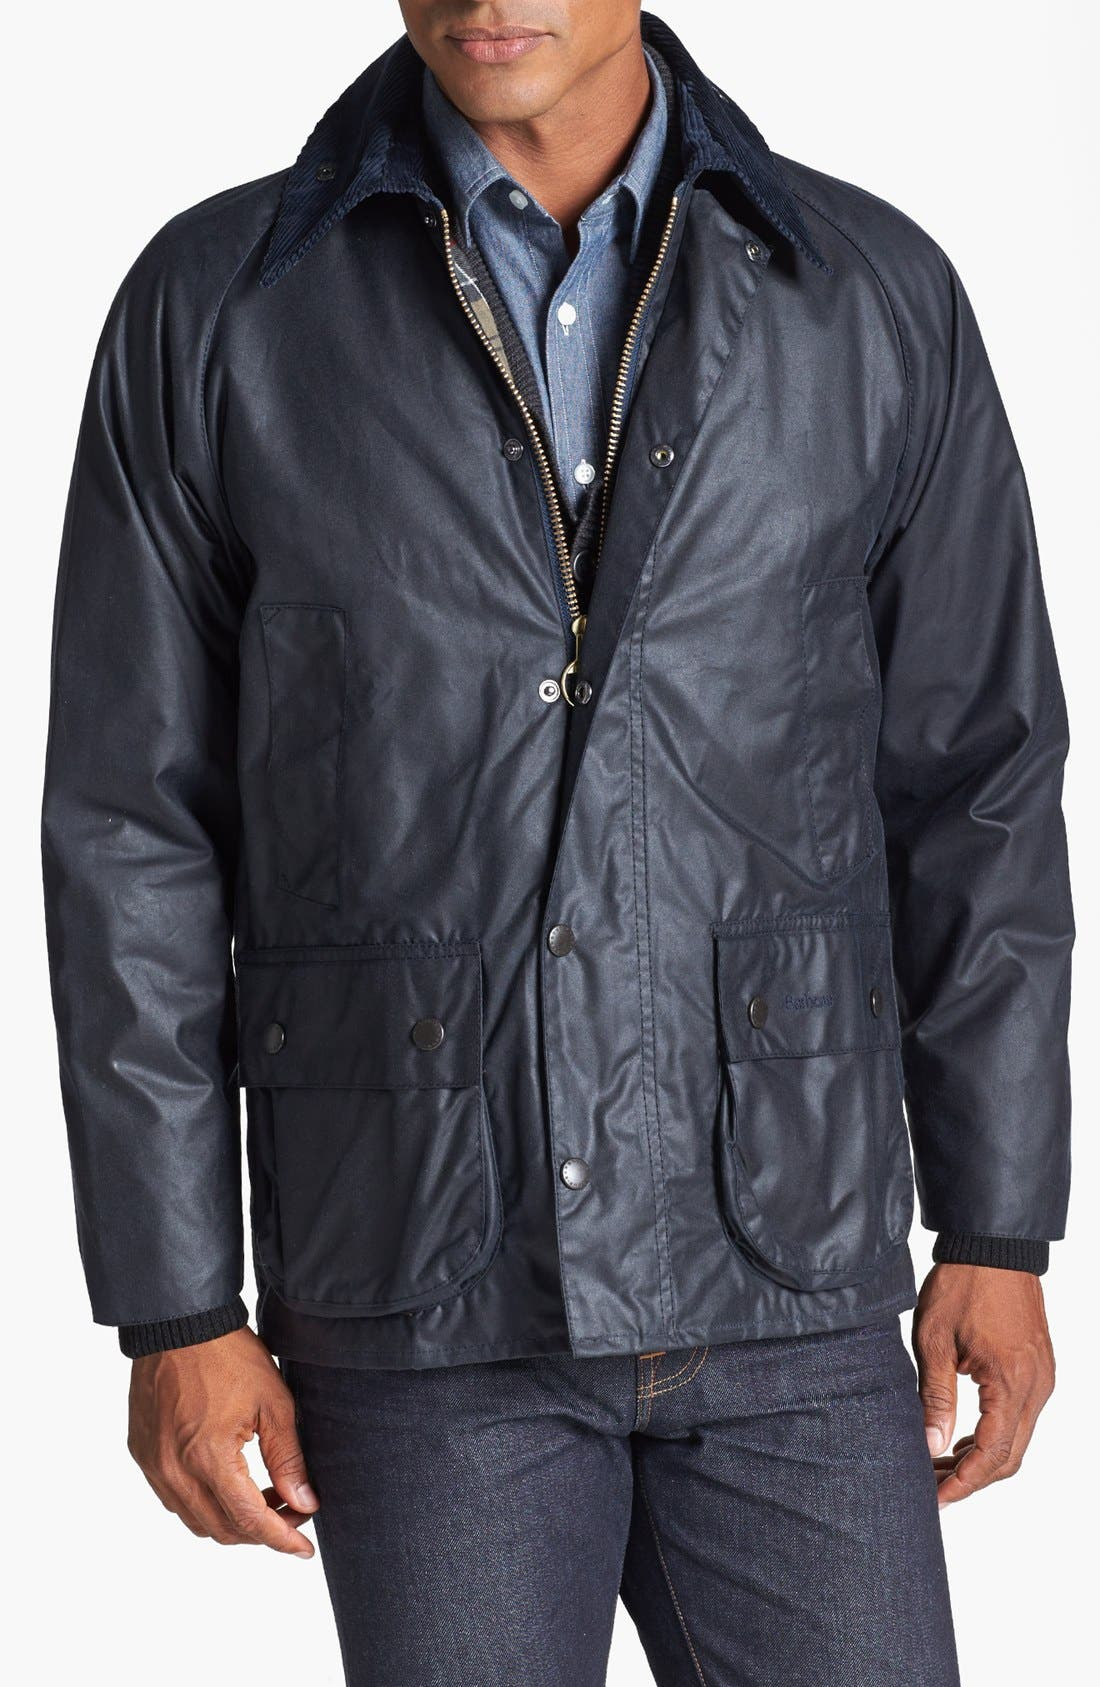 BARBOUR, 'Bedale' Regular Fit Waxed Cotton Jacket, Main thumbnail 1, color, NAVY